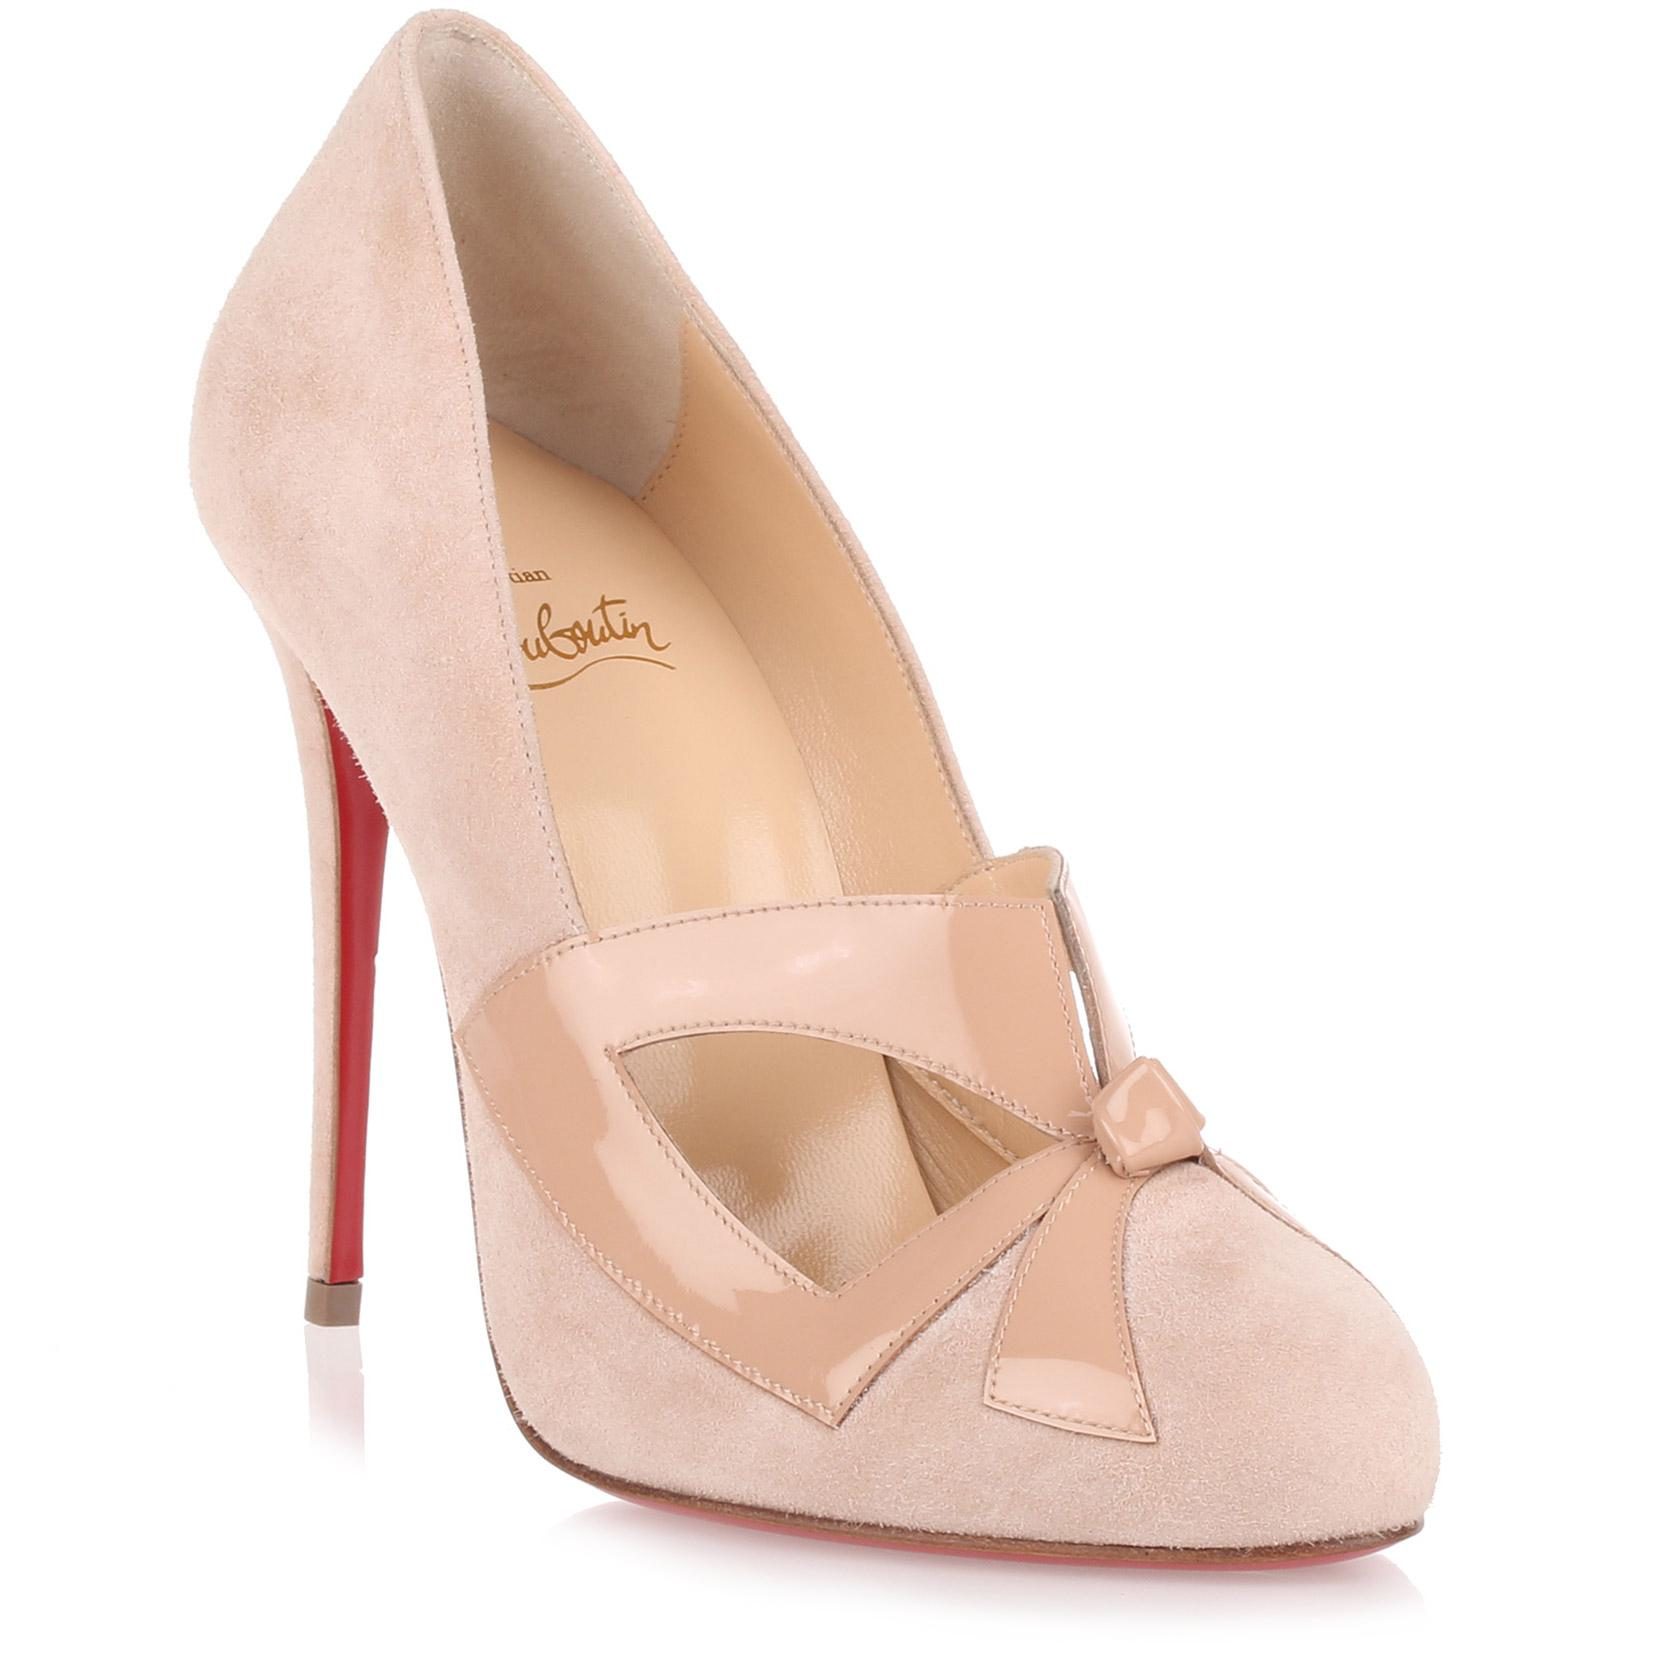 Bow Me Dear powder suede pump Christian Louboutin sUVQ36uMPN